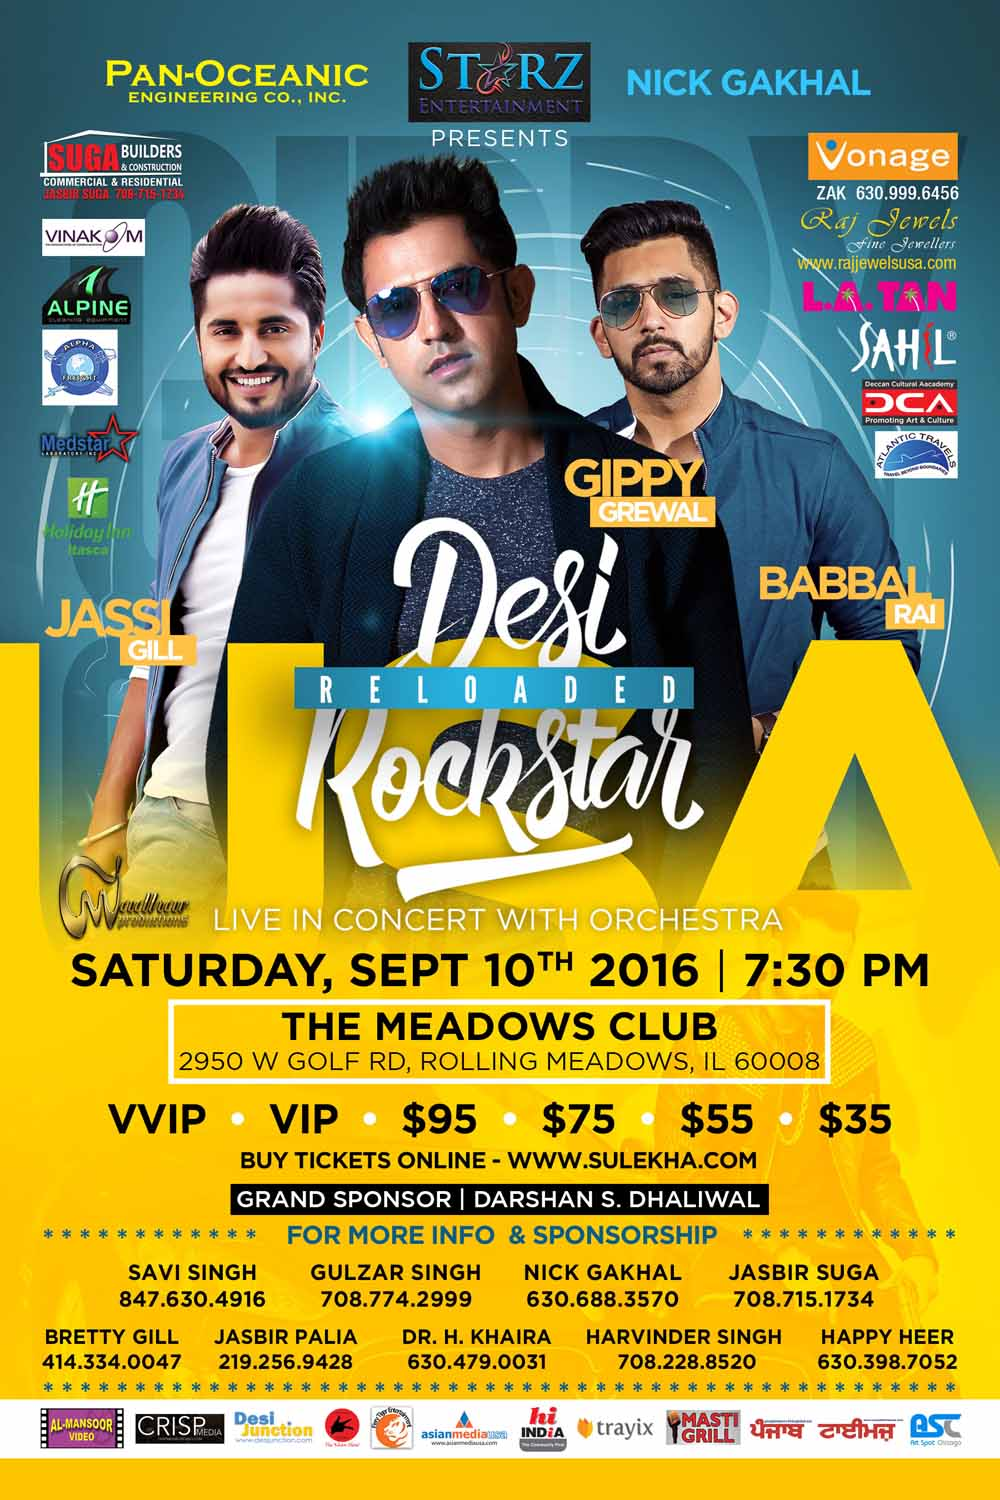 Desi Rock star Reloaded 2016 Gippy Grewal, Jassie Gill, along with Babbi Rai